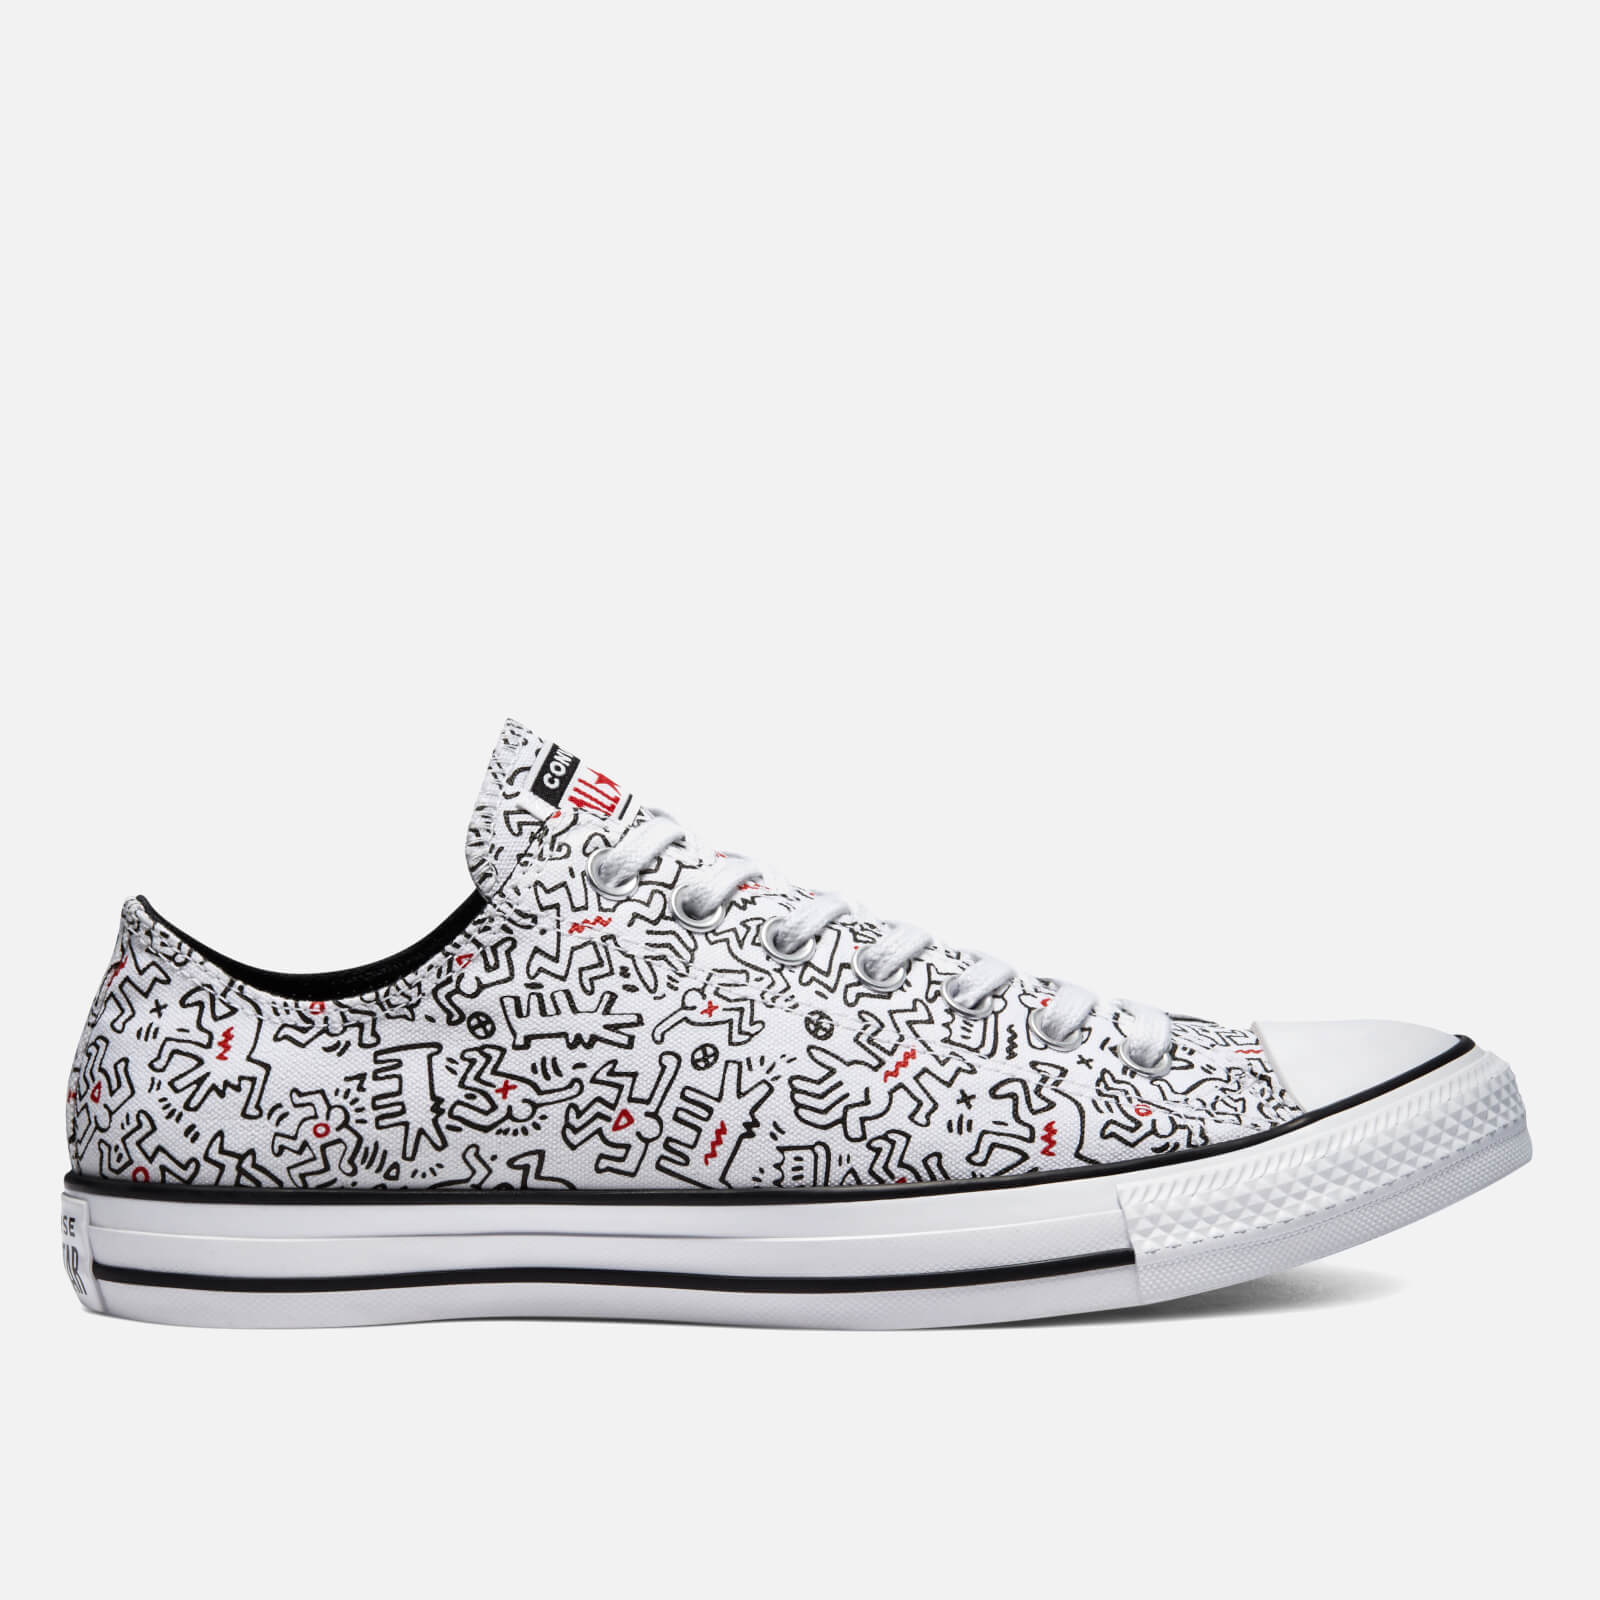 Converse Keith Haring Chuck Taylor All Star Ox Trainers - White/Black/Red - UK 11